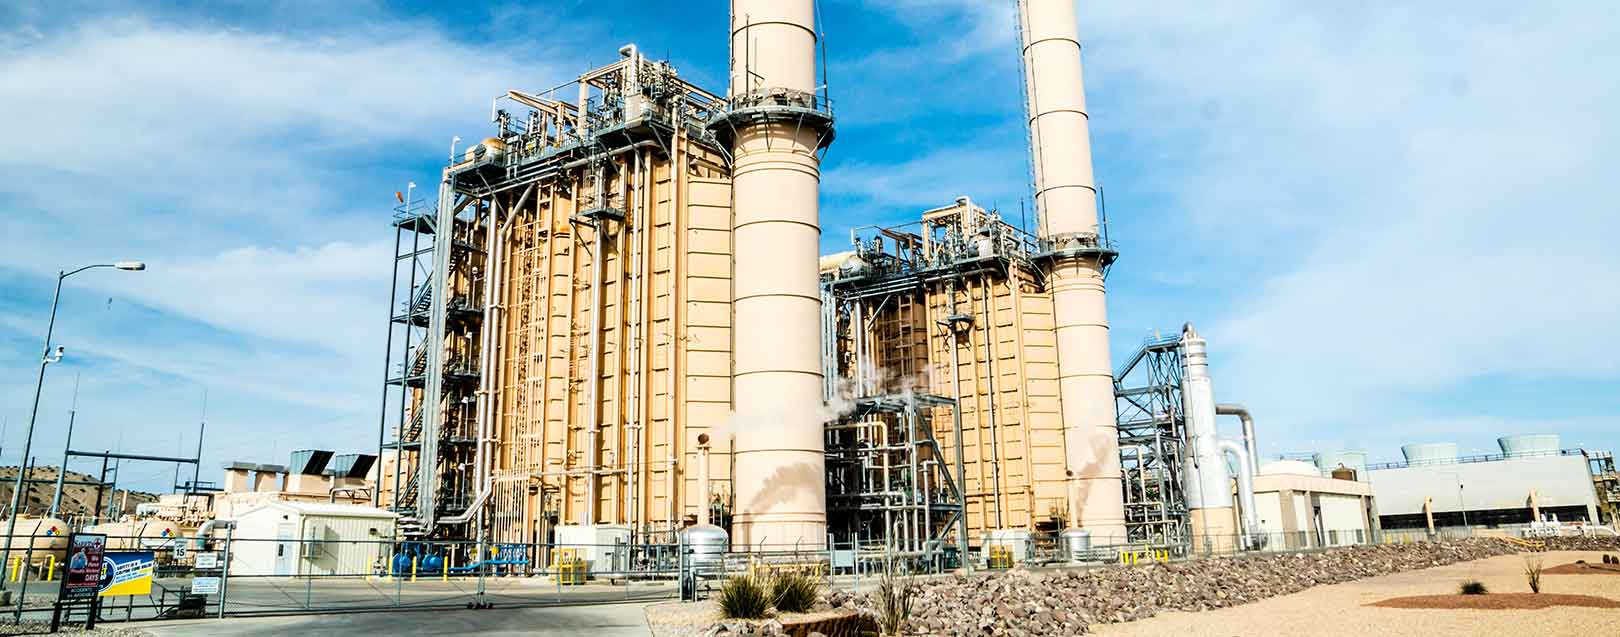 Essar Power plans to resume works at Hazira plant